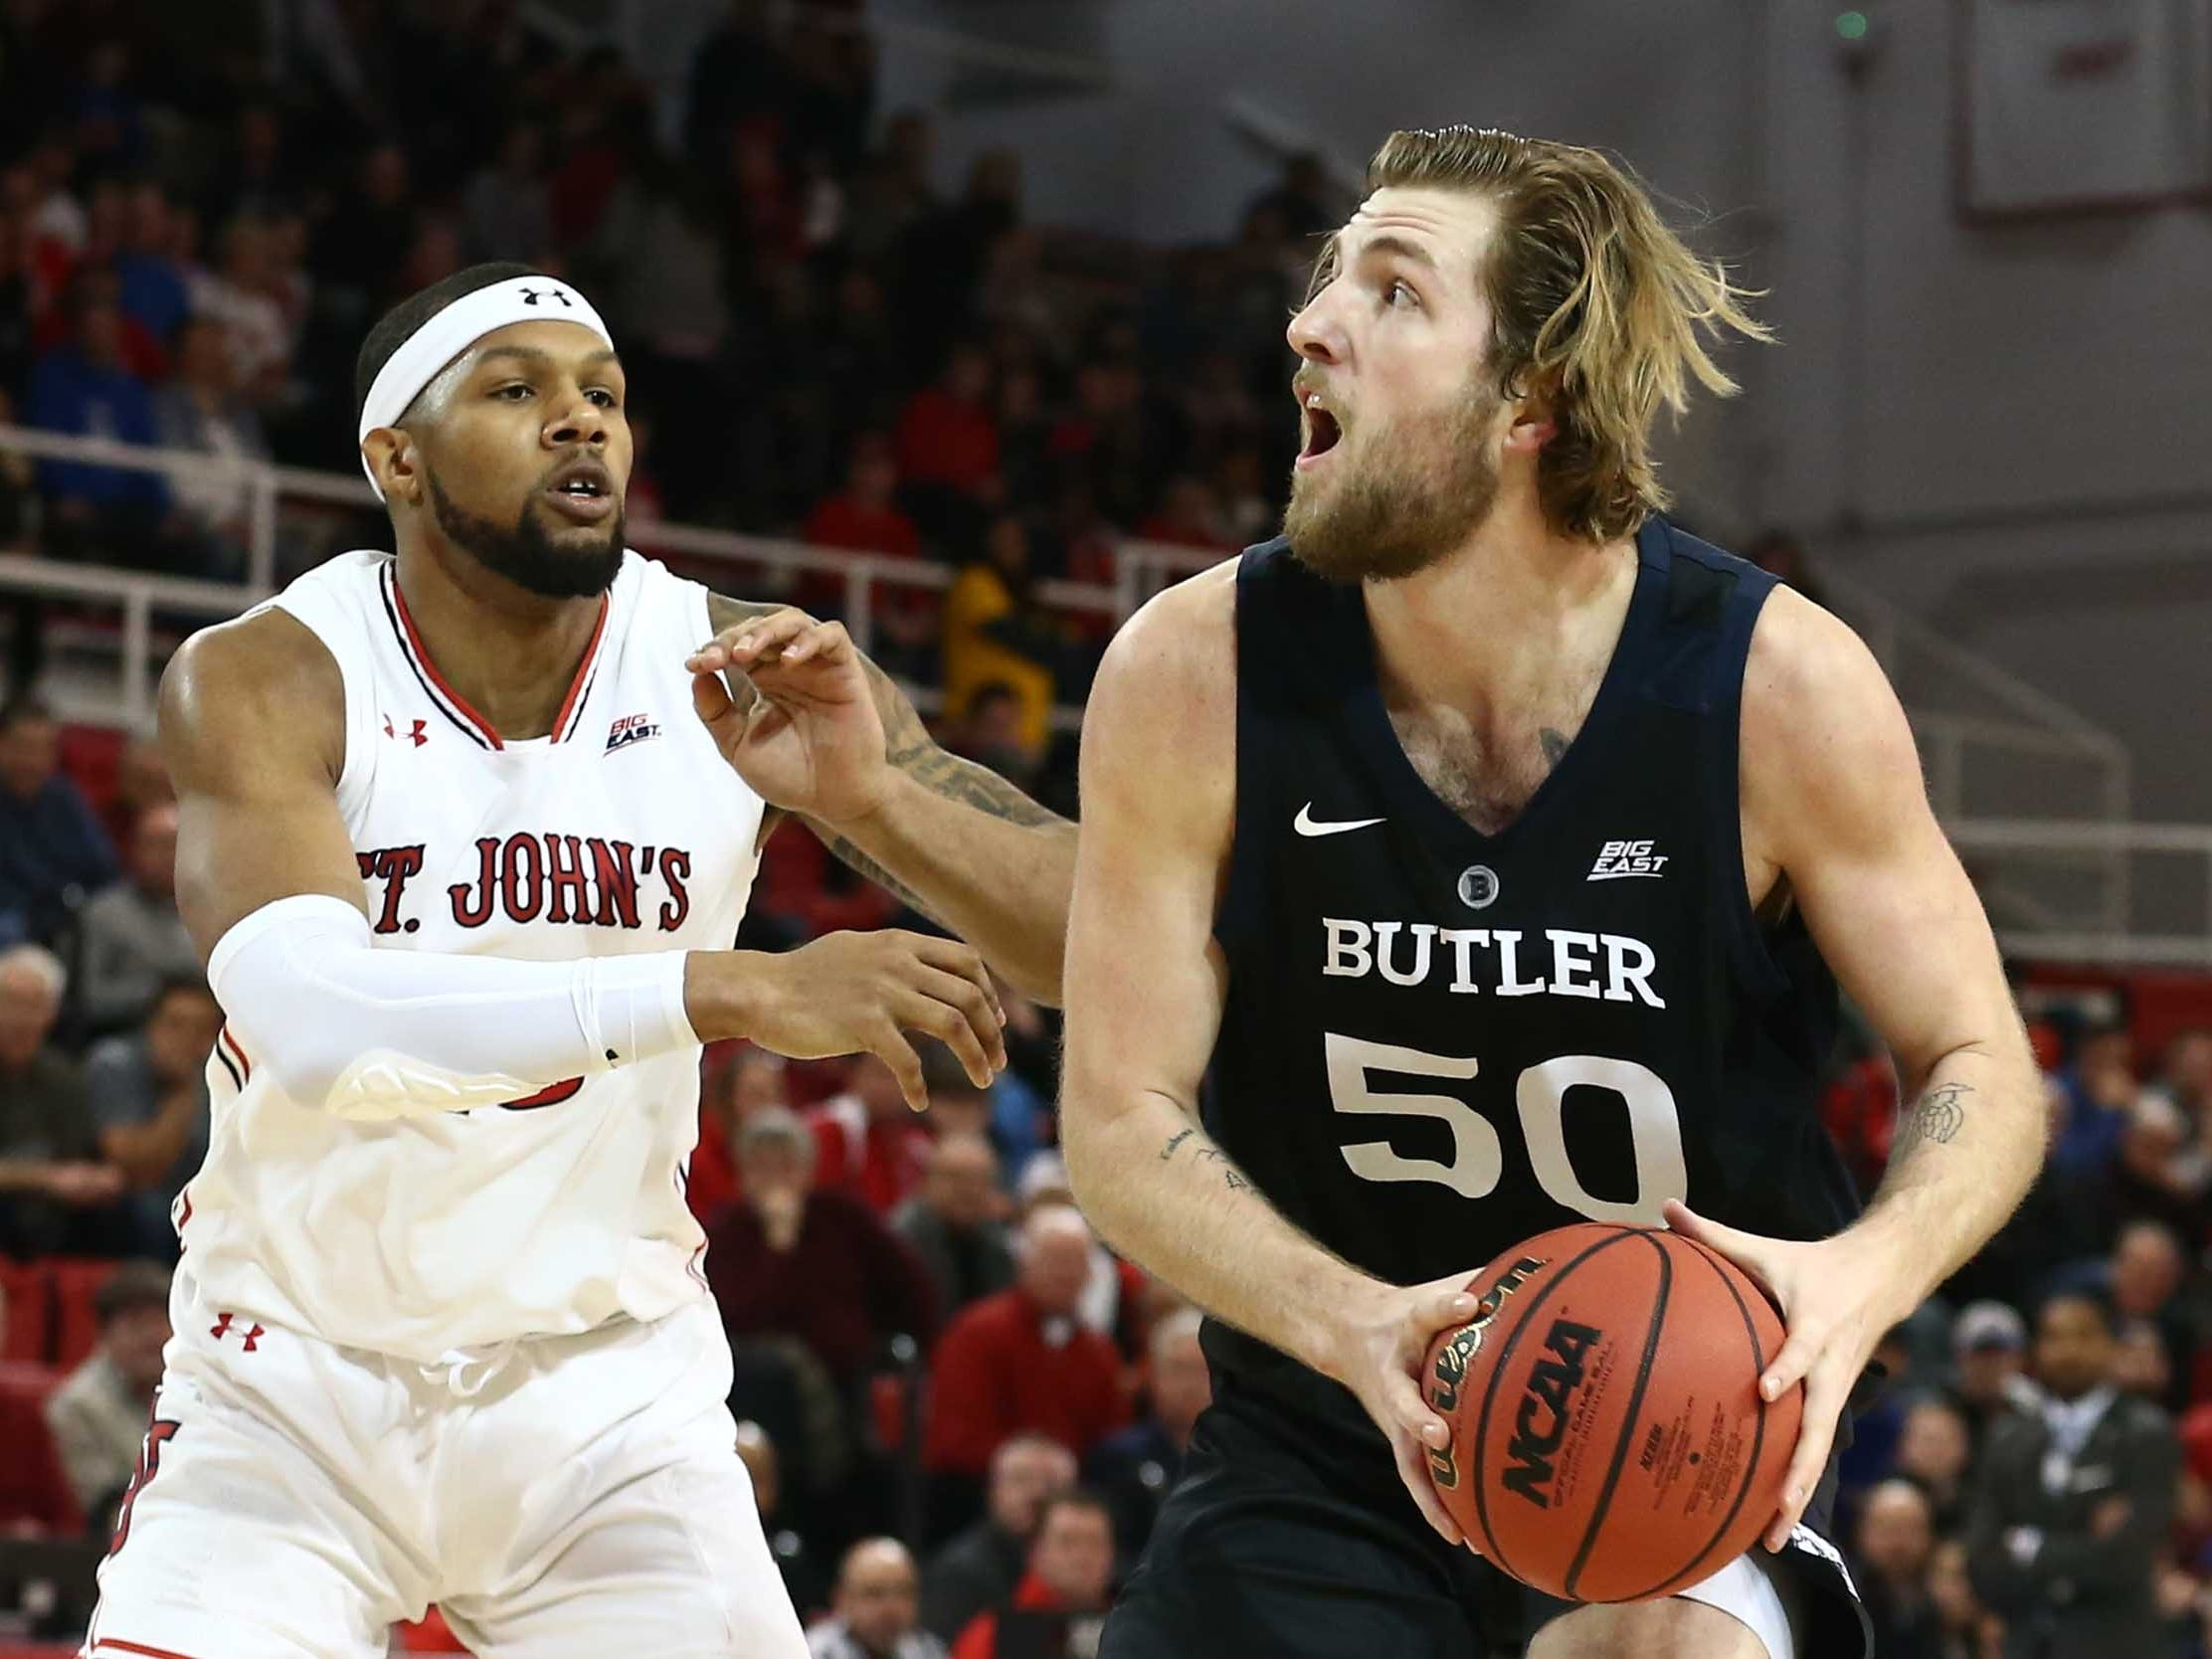 Feb 12, 2019; Queens, NY, USA; St. John's Red Storm forward Marvin Clark II (13) defends against Butler Bulldogs forward Joey Brunk (50) in the first half at Carnesecca Arena.